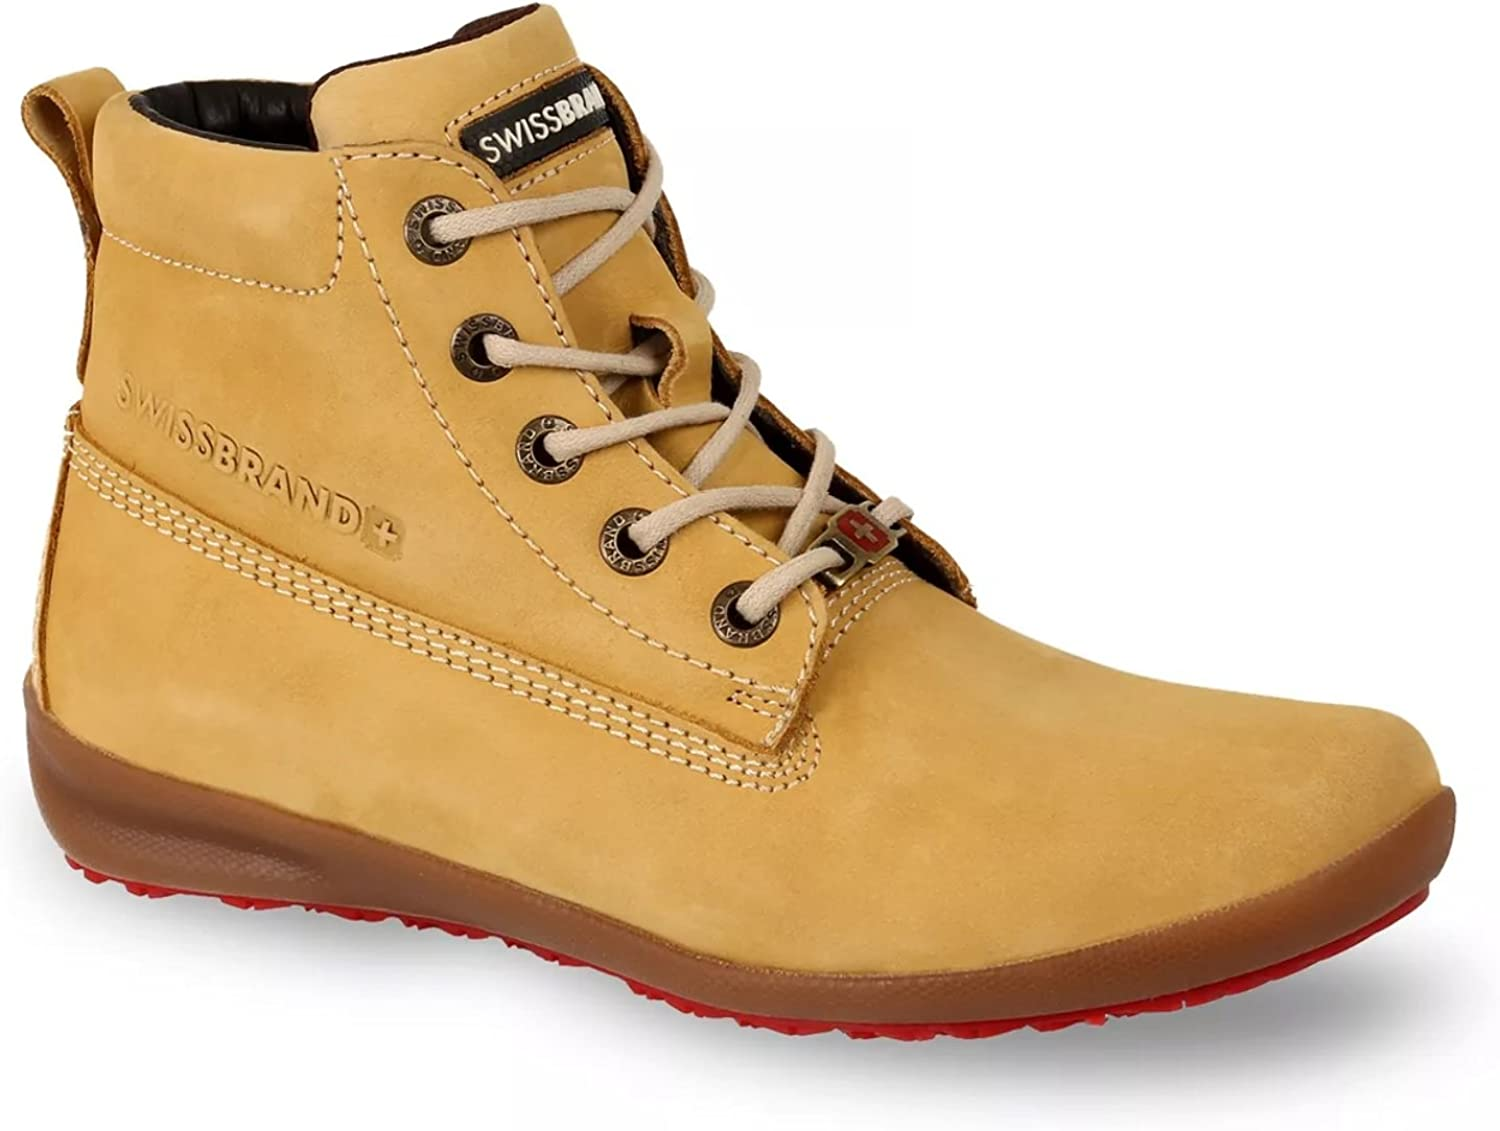 Swissbrand Women's Casual Boot Yellow Leather Lace-Up Cushion Comfort shoes